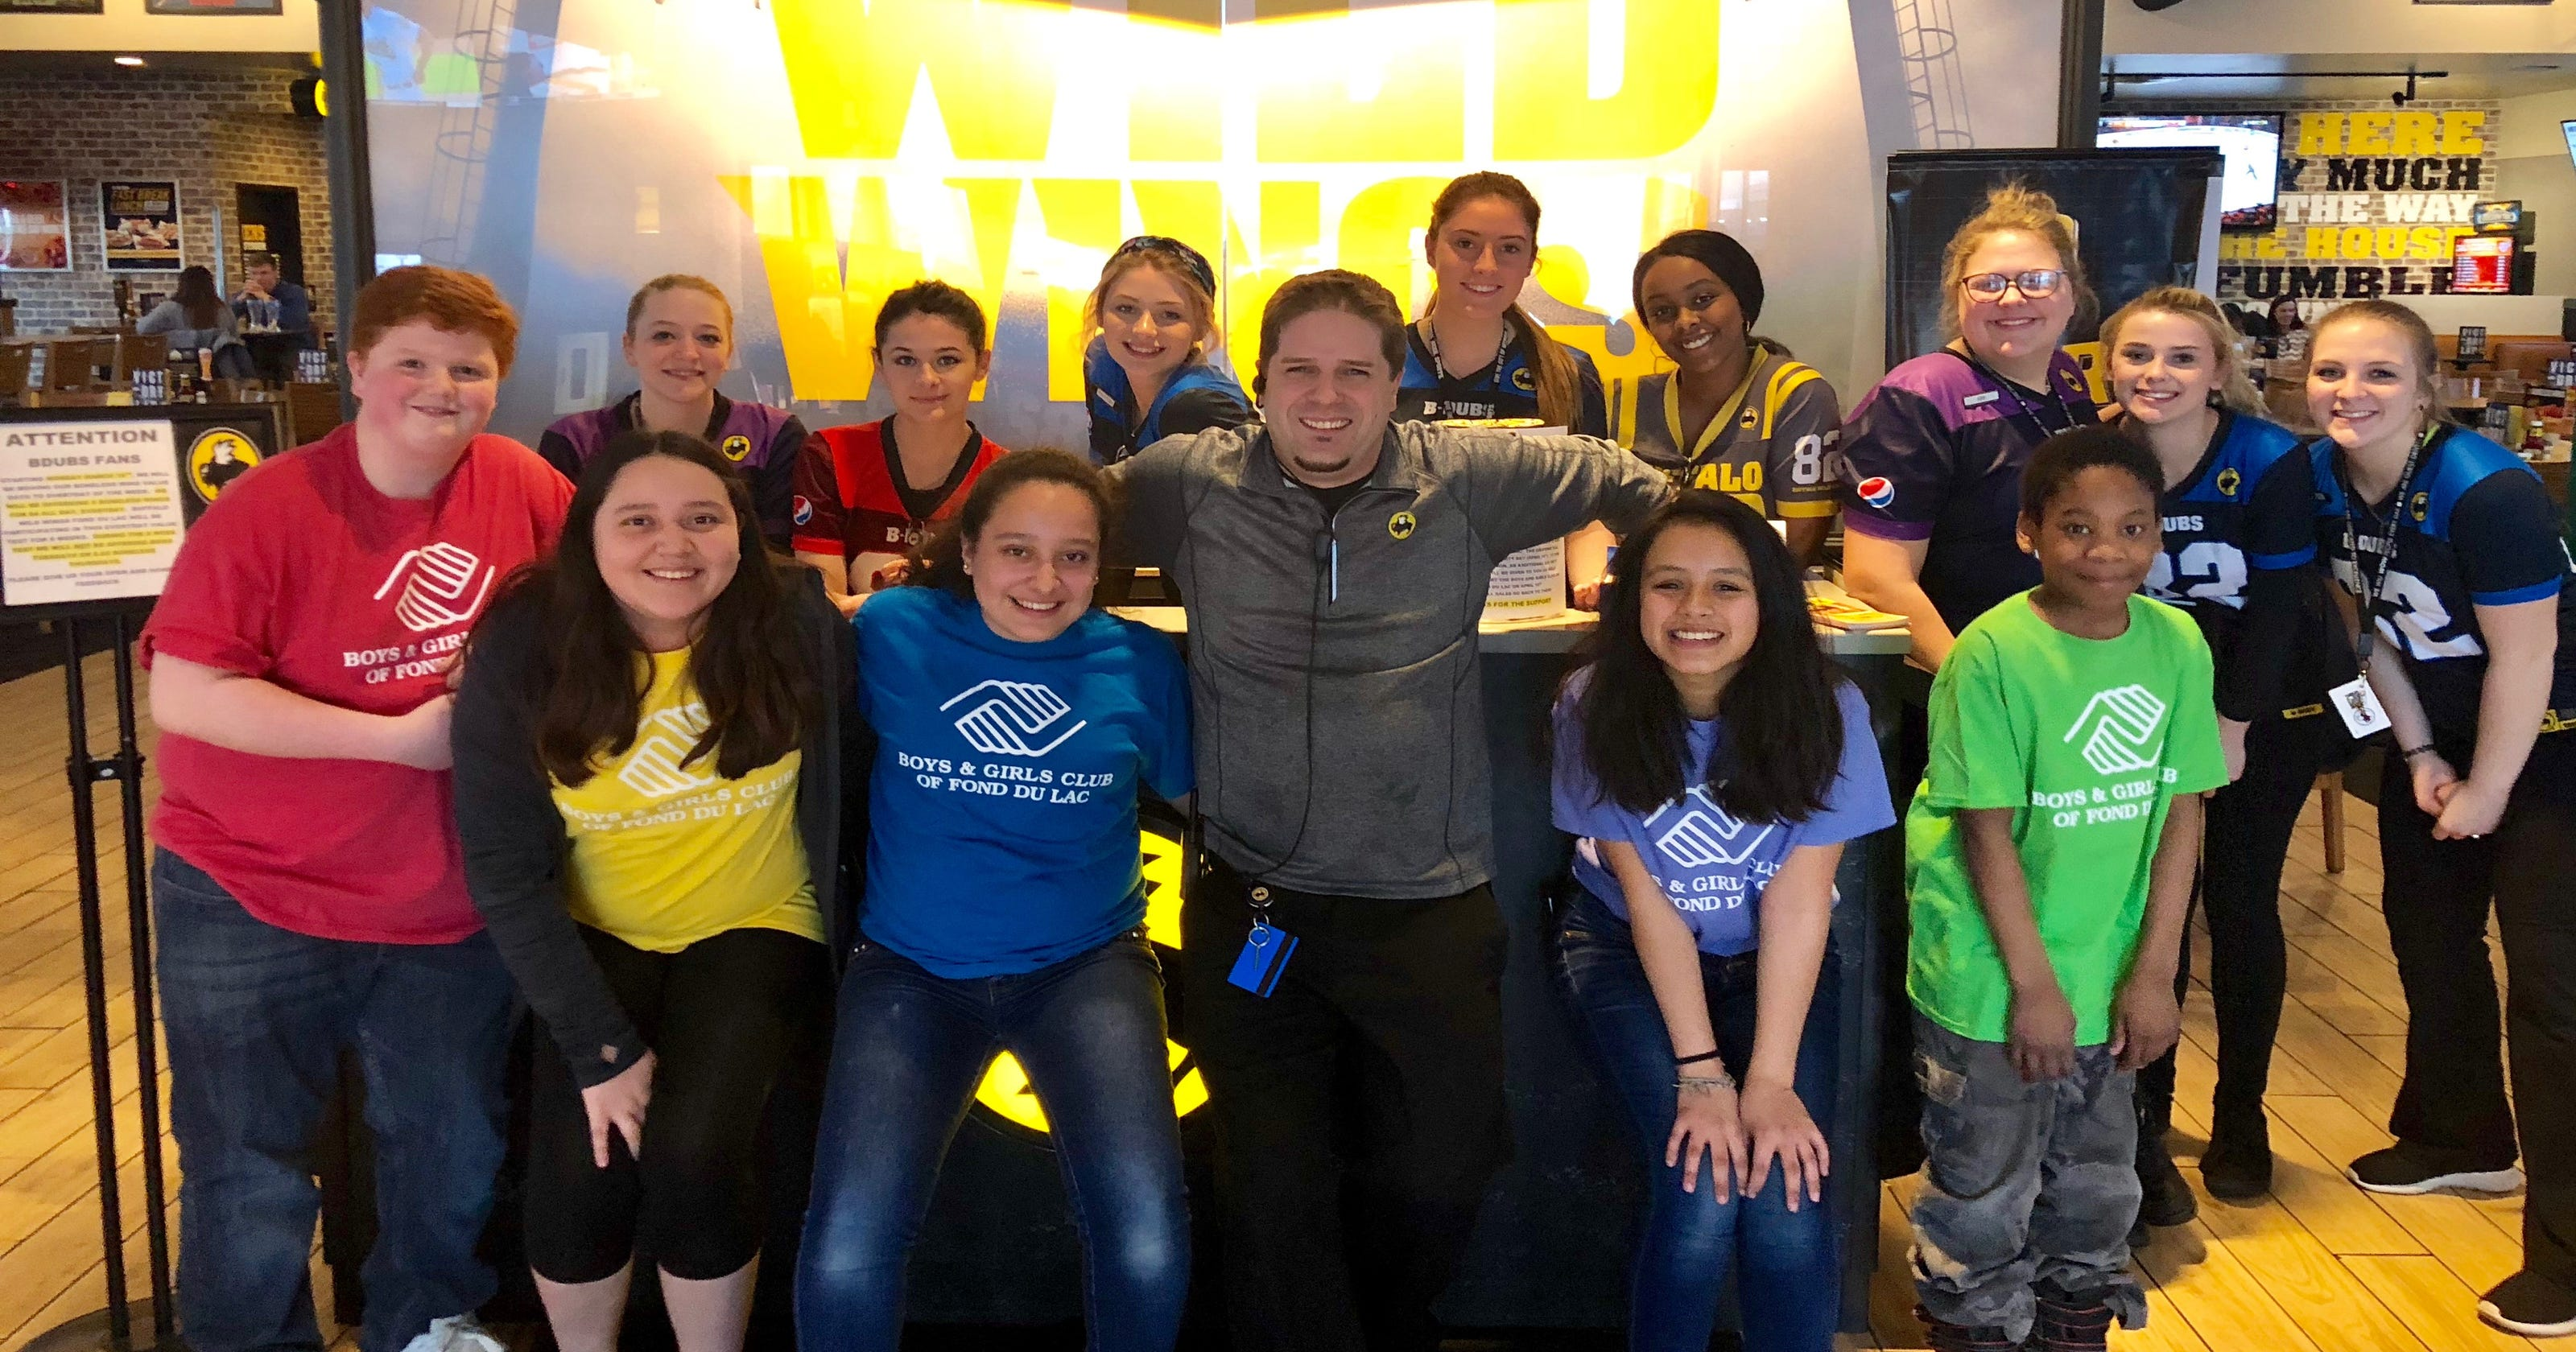 Buffalo Wild Wings Hosts Community Day To Benefit Boys Girls Club